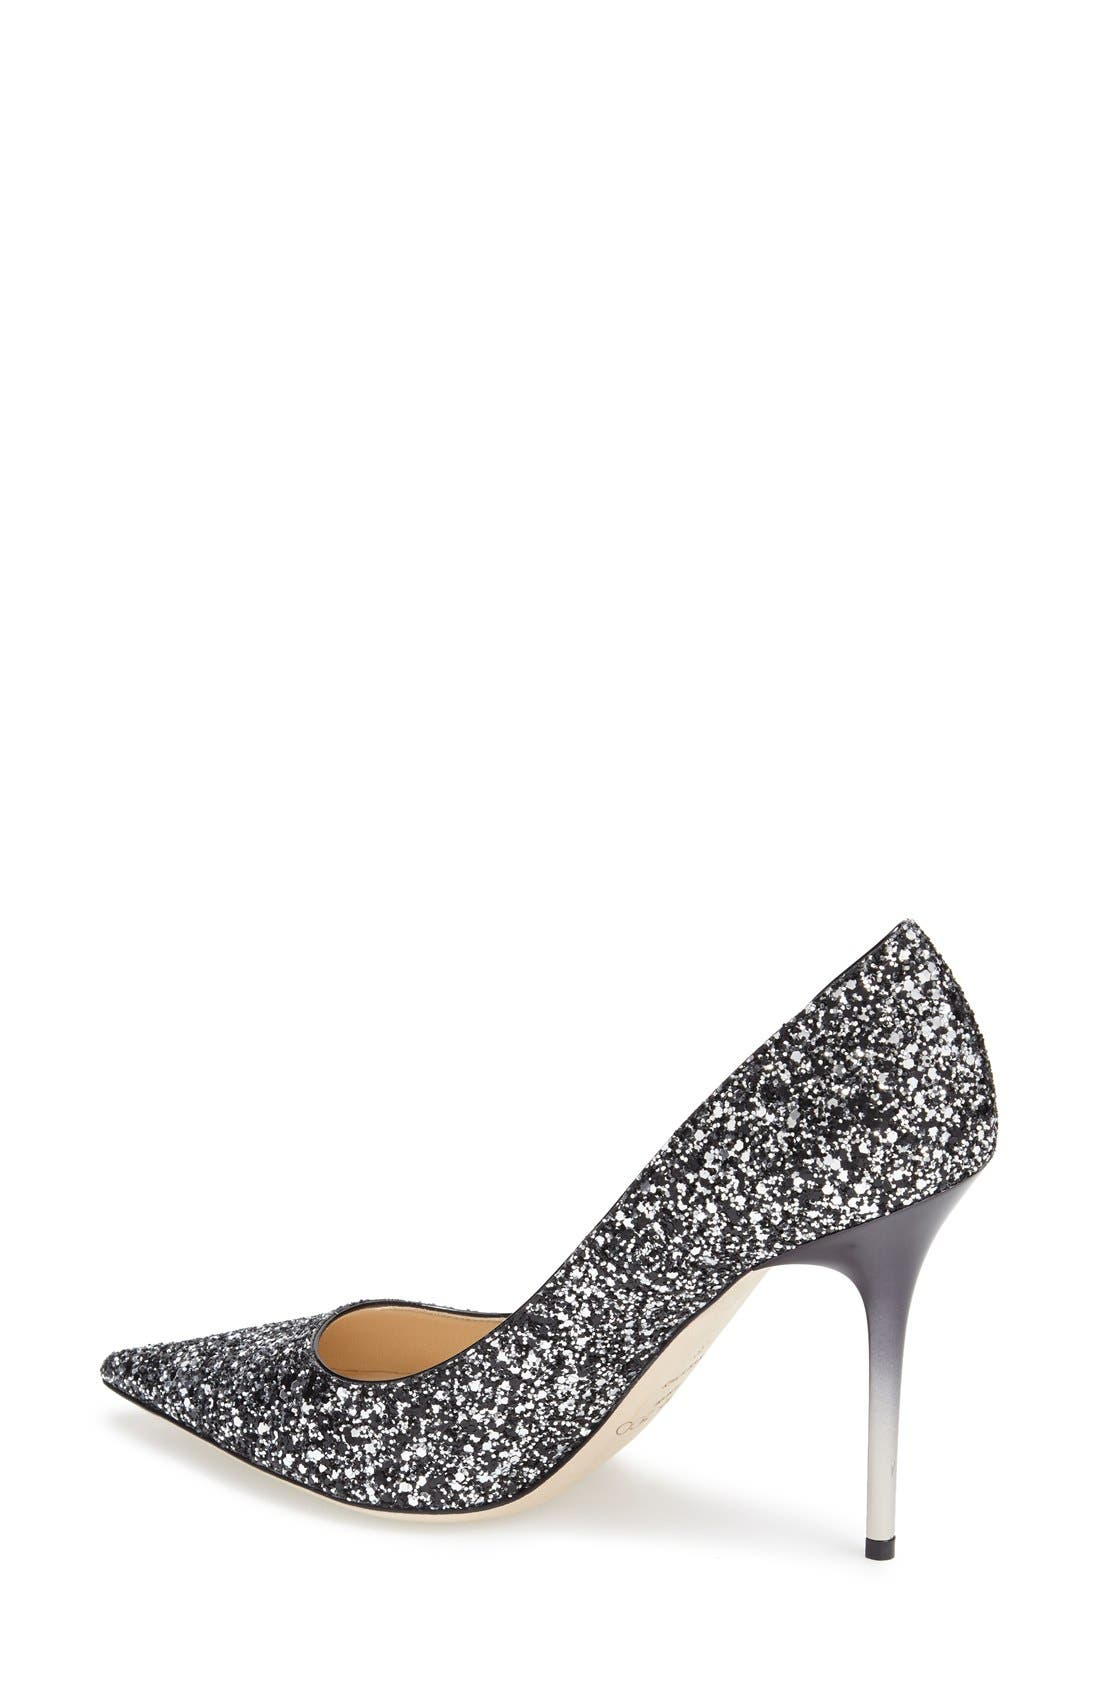 'Abel' Pointy Toe Pump,                             Alternate thumbnail 2, color,                             002